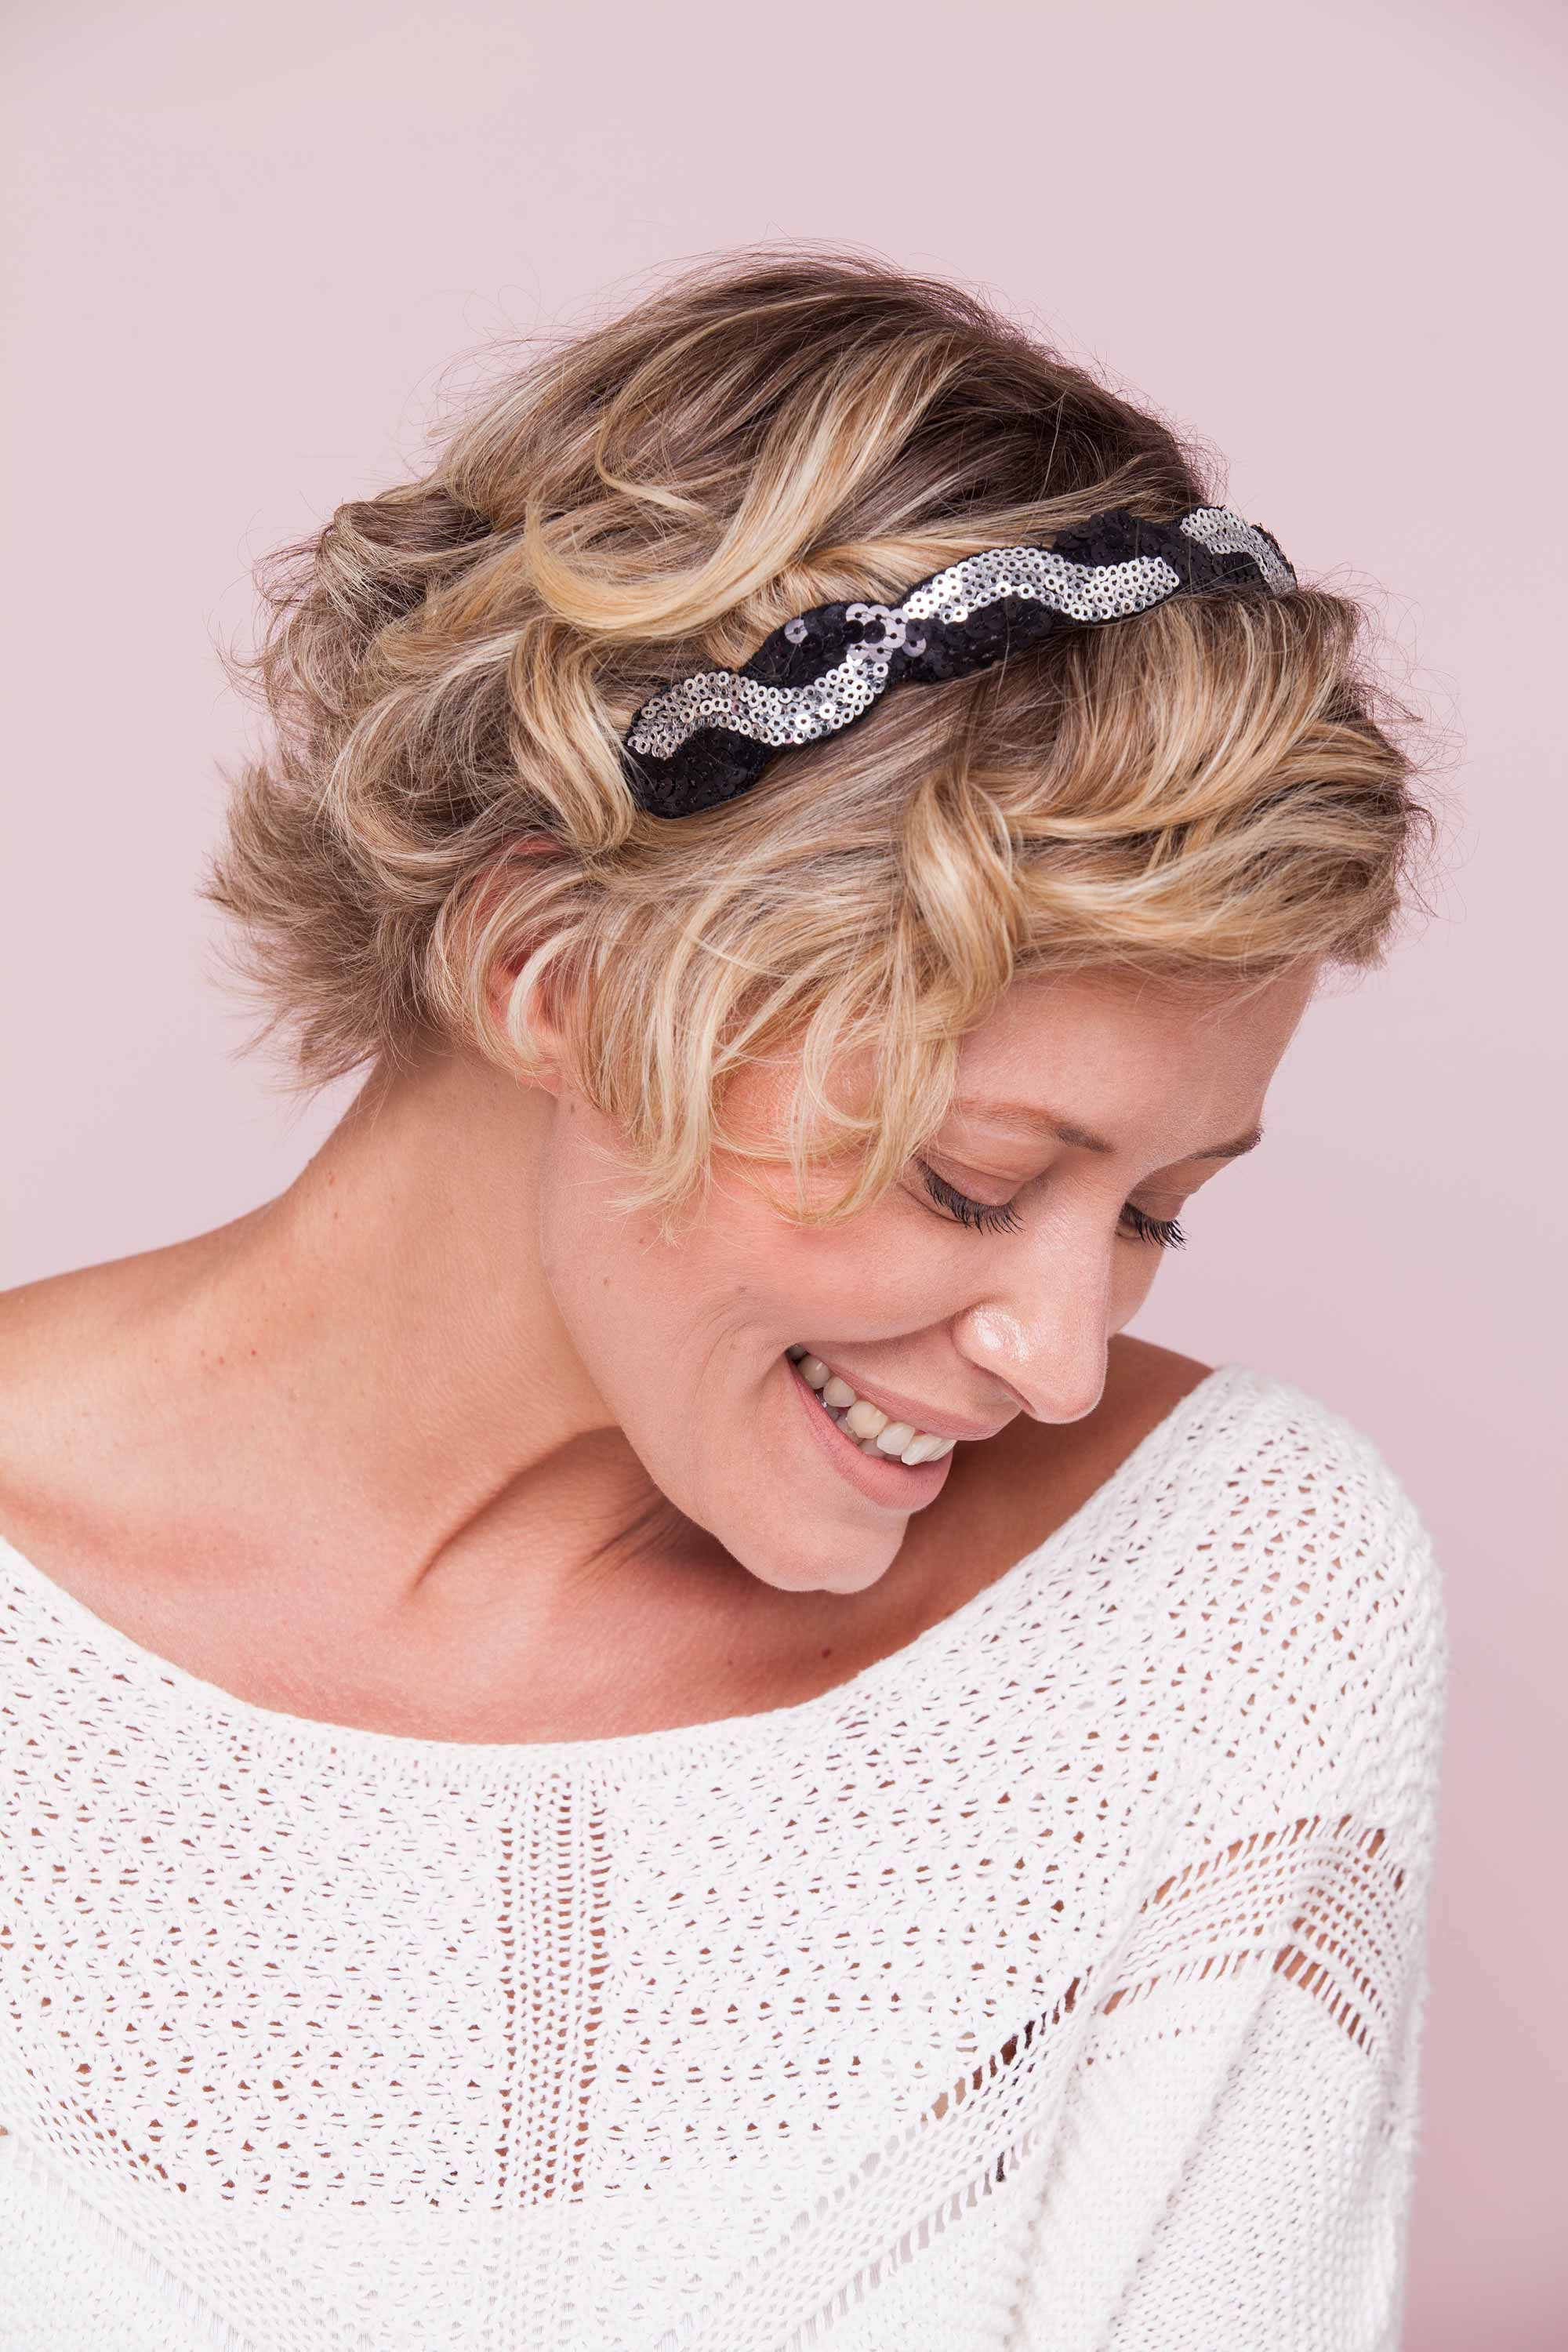 Favorite Accessories For Cute Short Hair | All Things Hair - From pertaining to Cute Short Hairstyles With Headbands